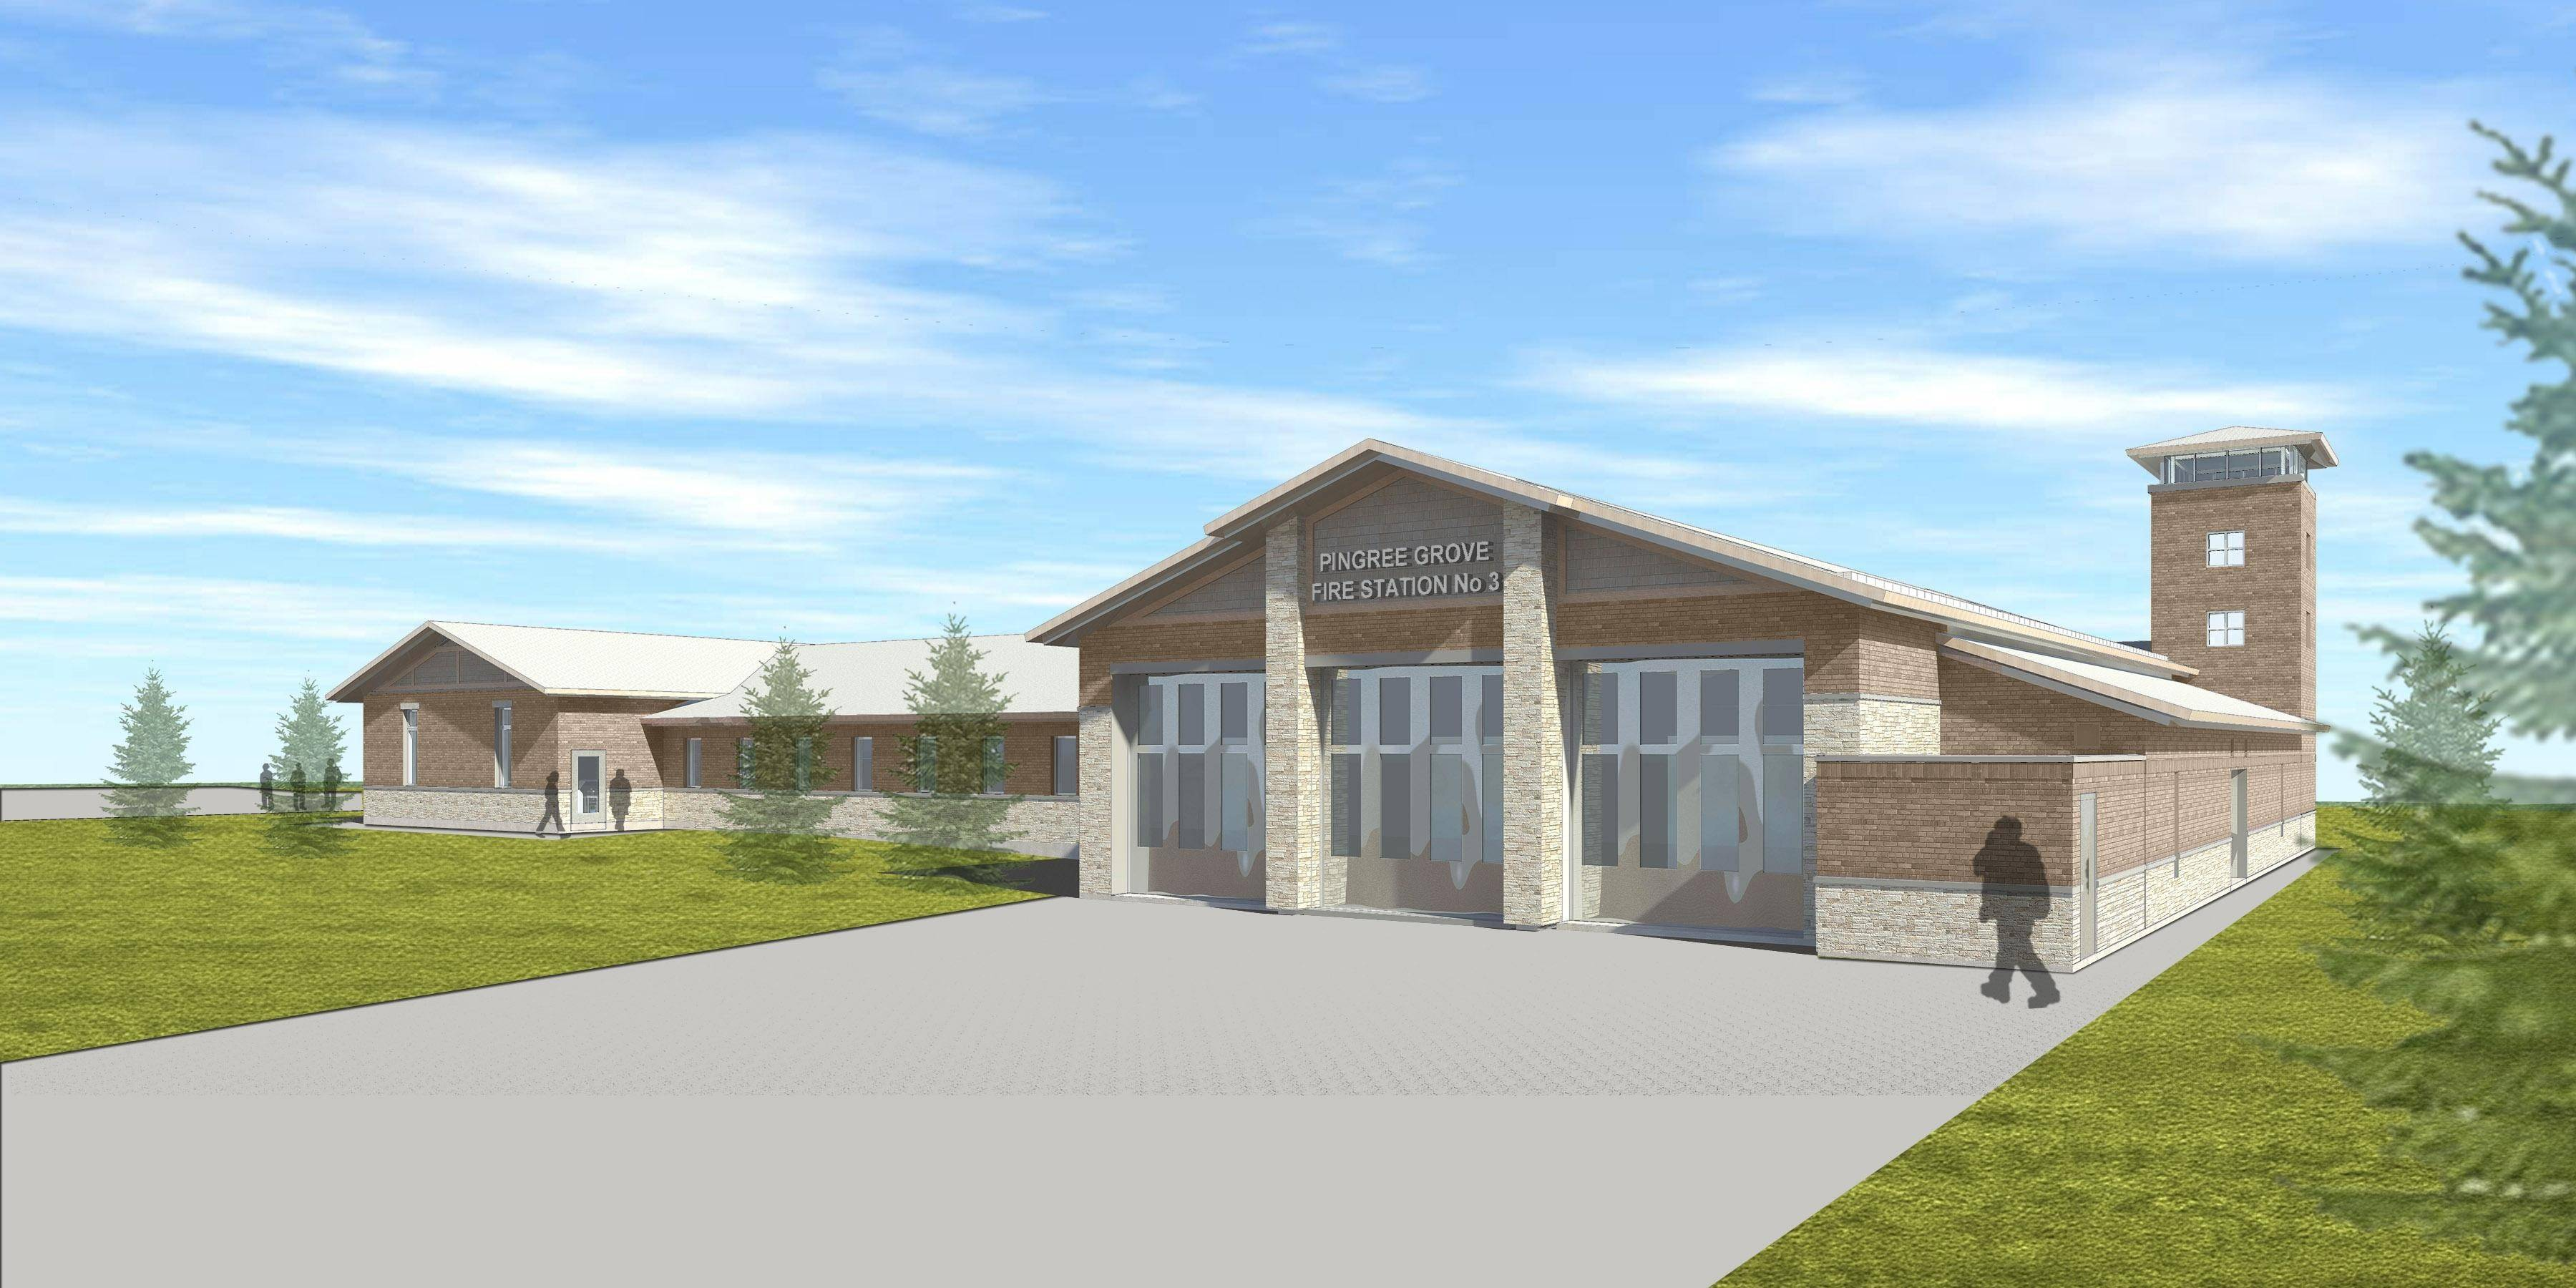 A new fire station for the Pingree Grove and Countryside Fire Protection District will be built on about 3 acres west of Reinking Road just north of Route 72, at the entrance of the Cambridge Lakes North subdivision.